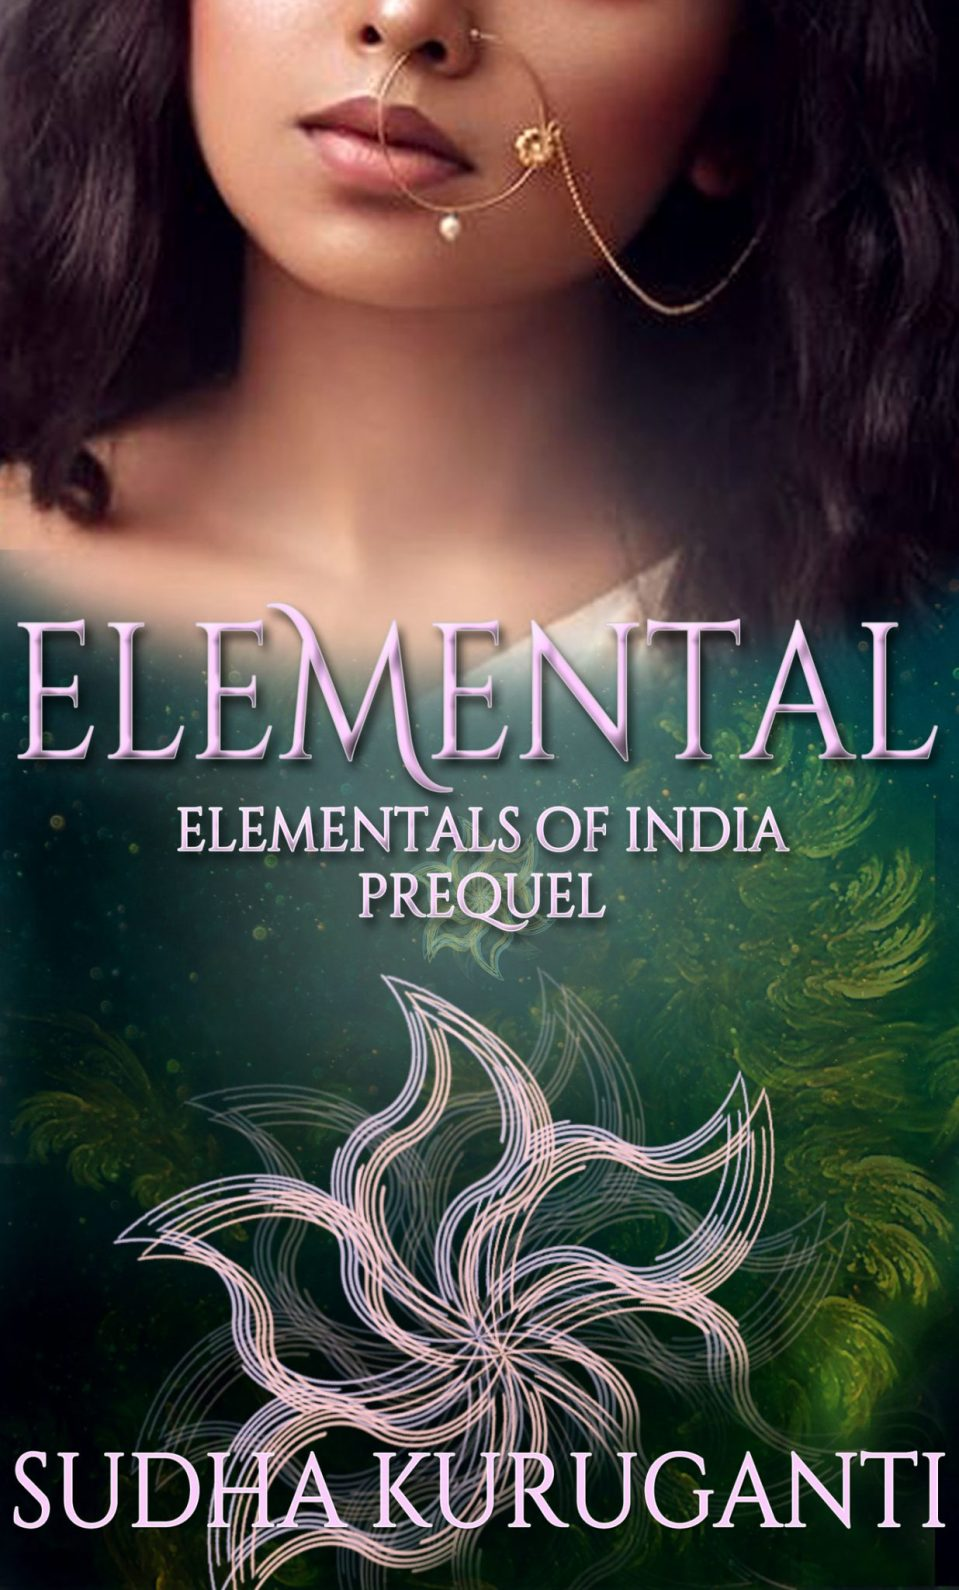 YA Indian paranormal romance inspired by Hindu mythology